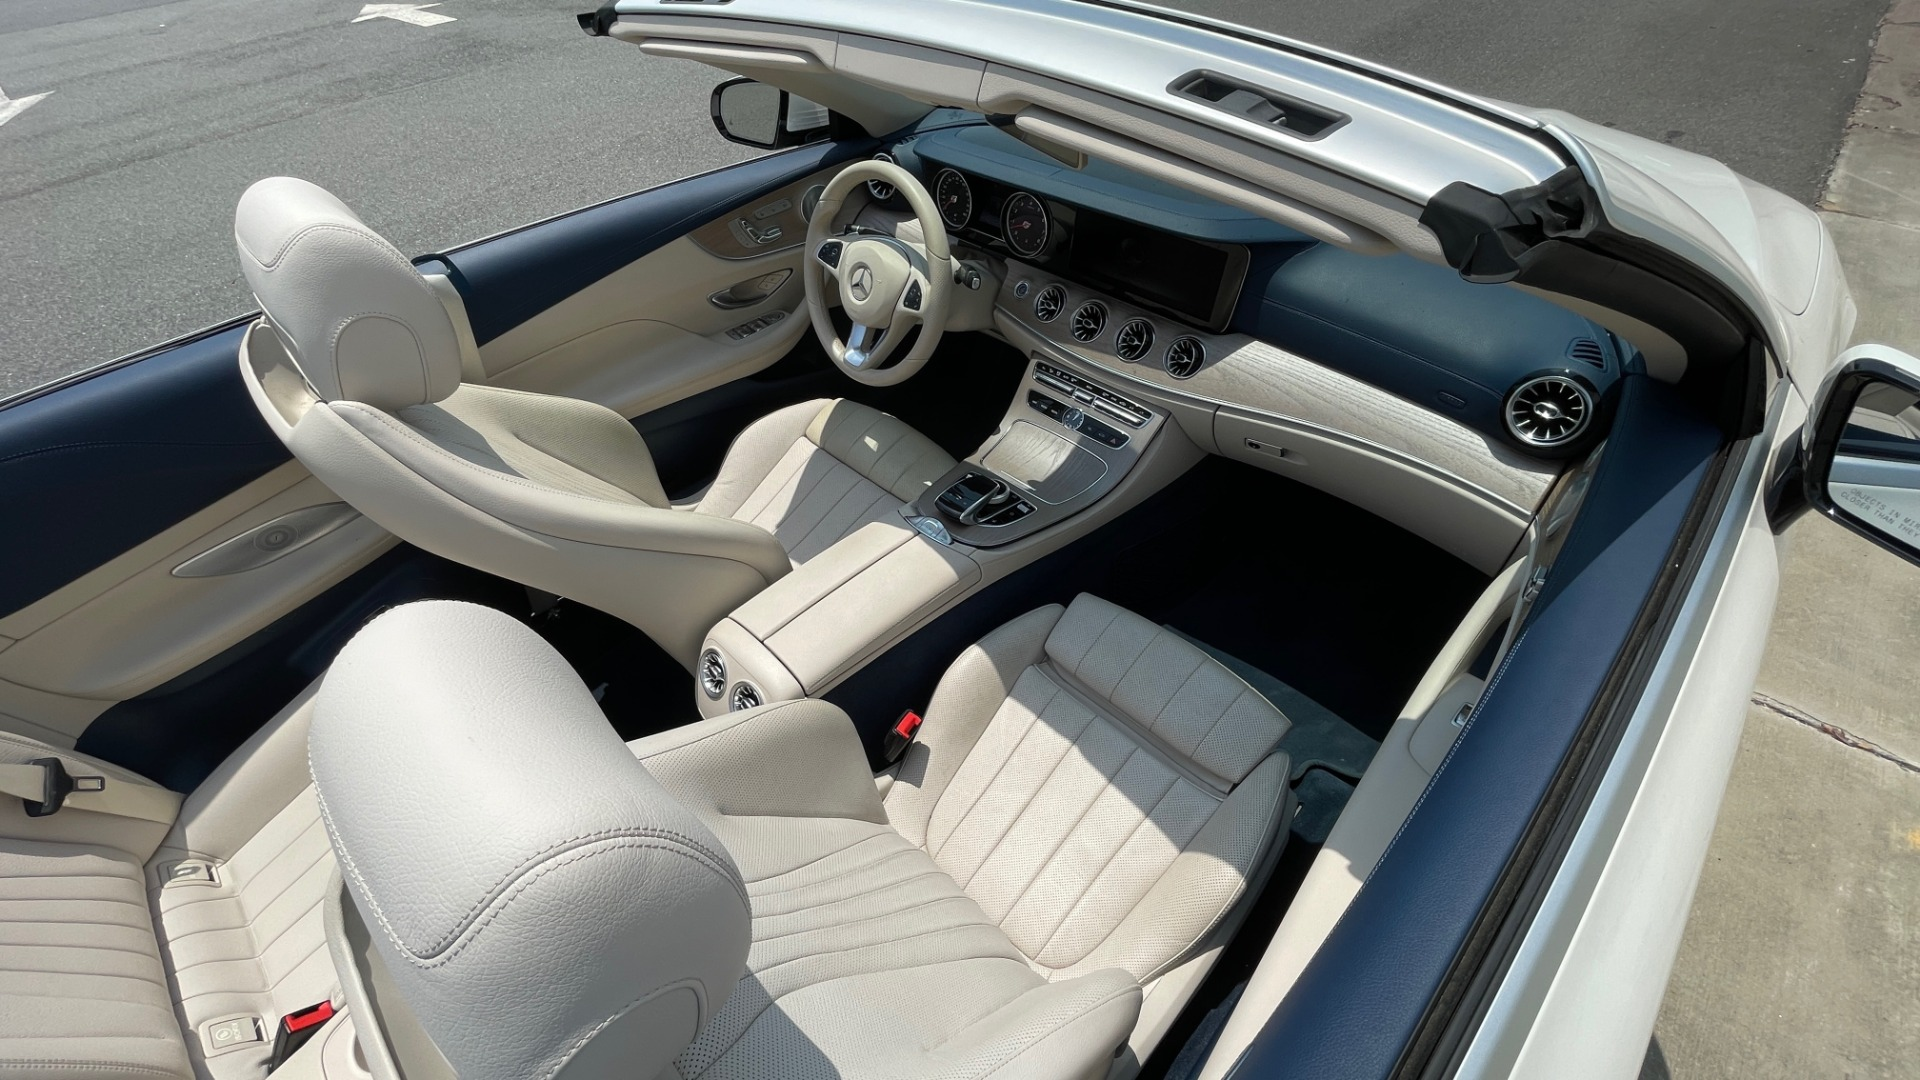 Used 2018 Mercedes-Benz E-CLASS E 400 CABRIOLET / PREM PKG / AMG LINE / NAV / REARVIEW for sale Sold at Formula Imports in Charlotte NC 28227 51